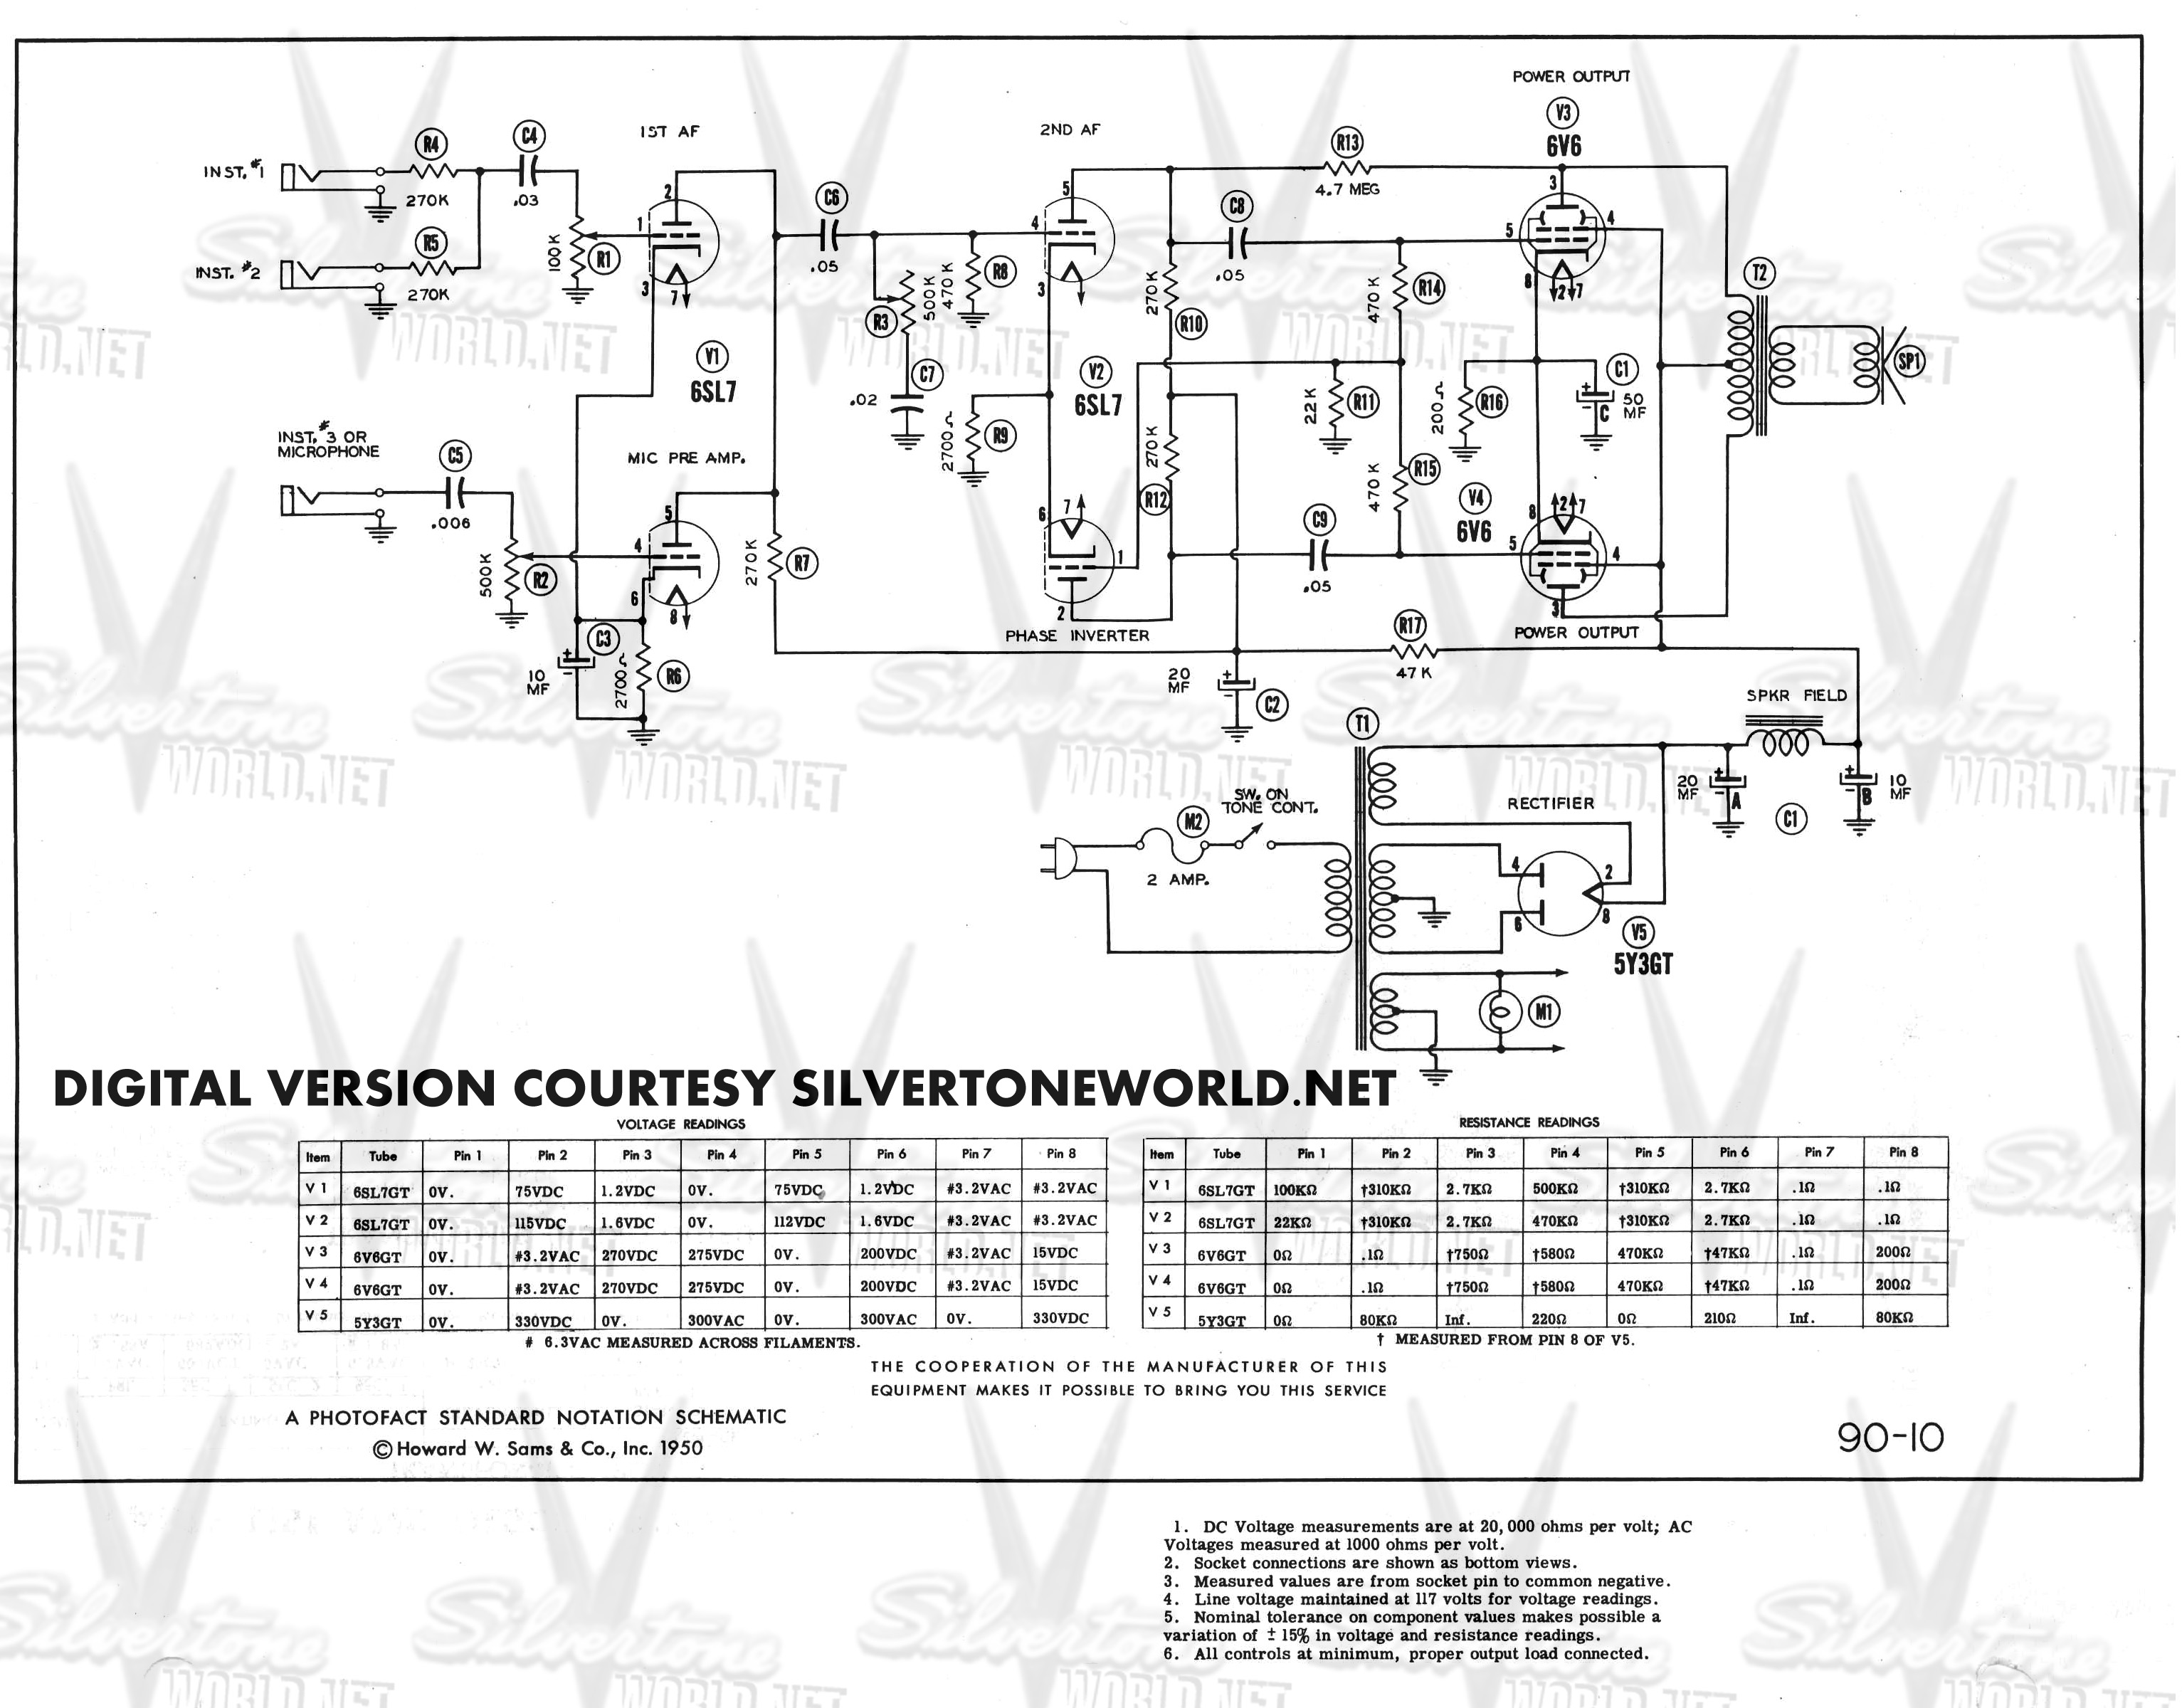 guitar wiring diagrams pdf silvertone world - division 57 - schematics, manuals and ...